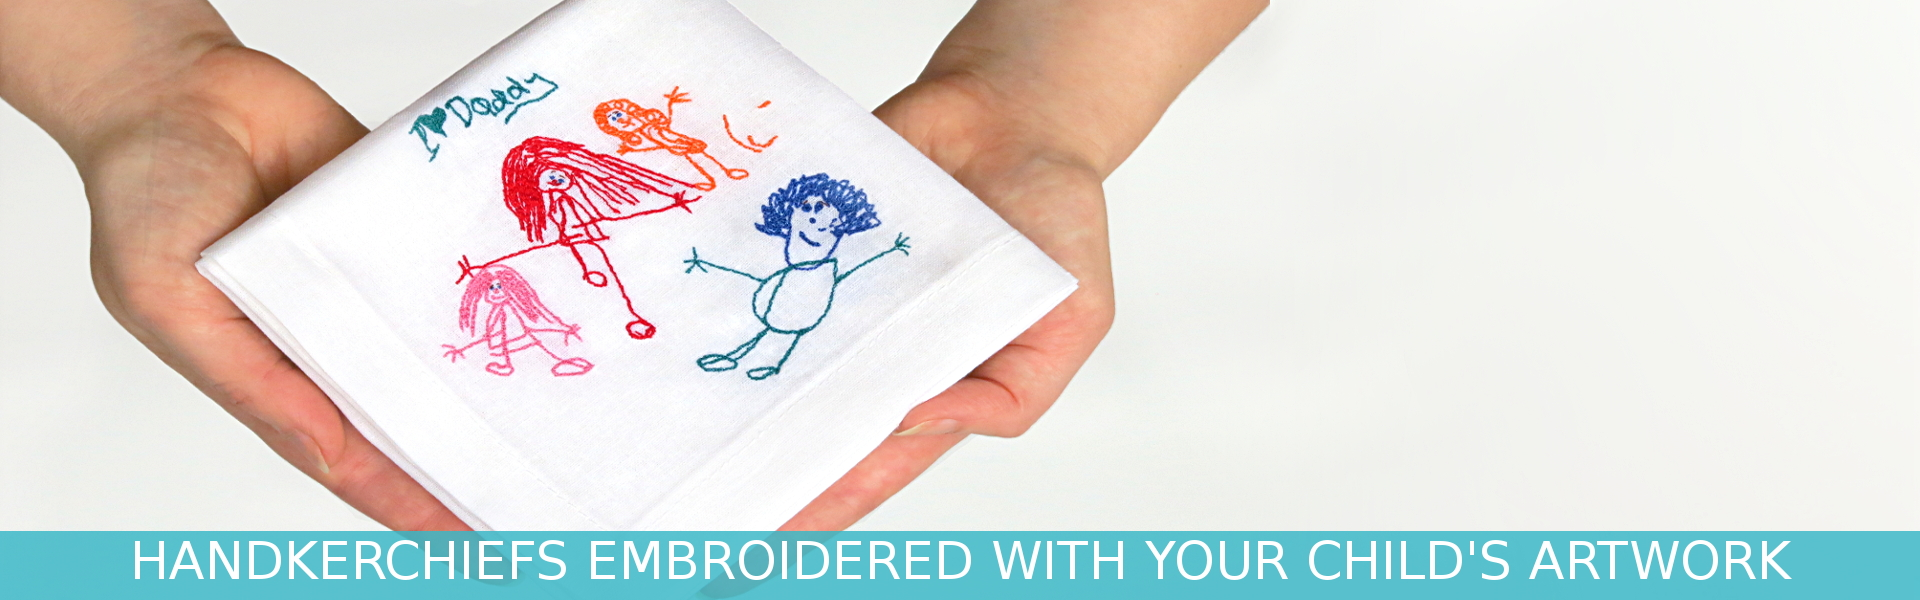 Embroidered handkerchief with your children's drawing